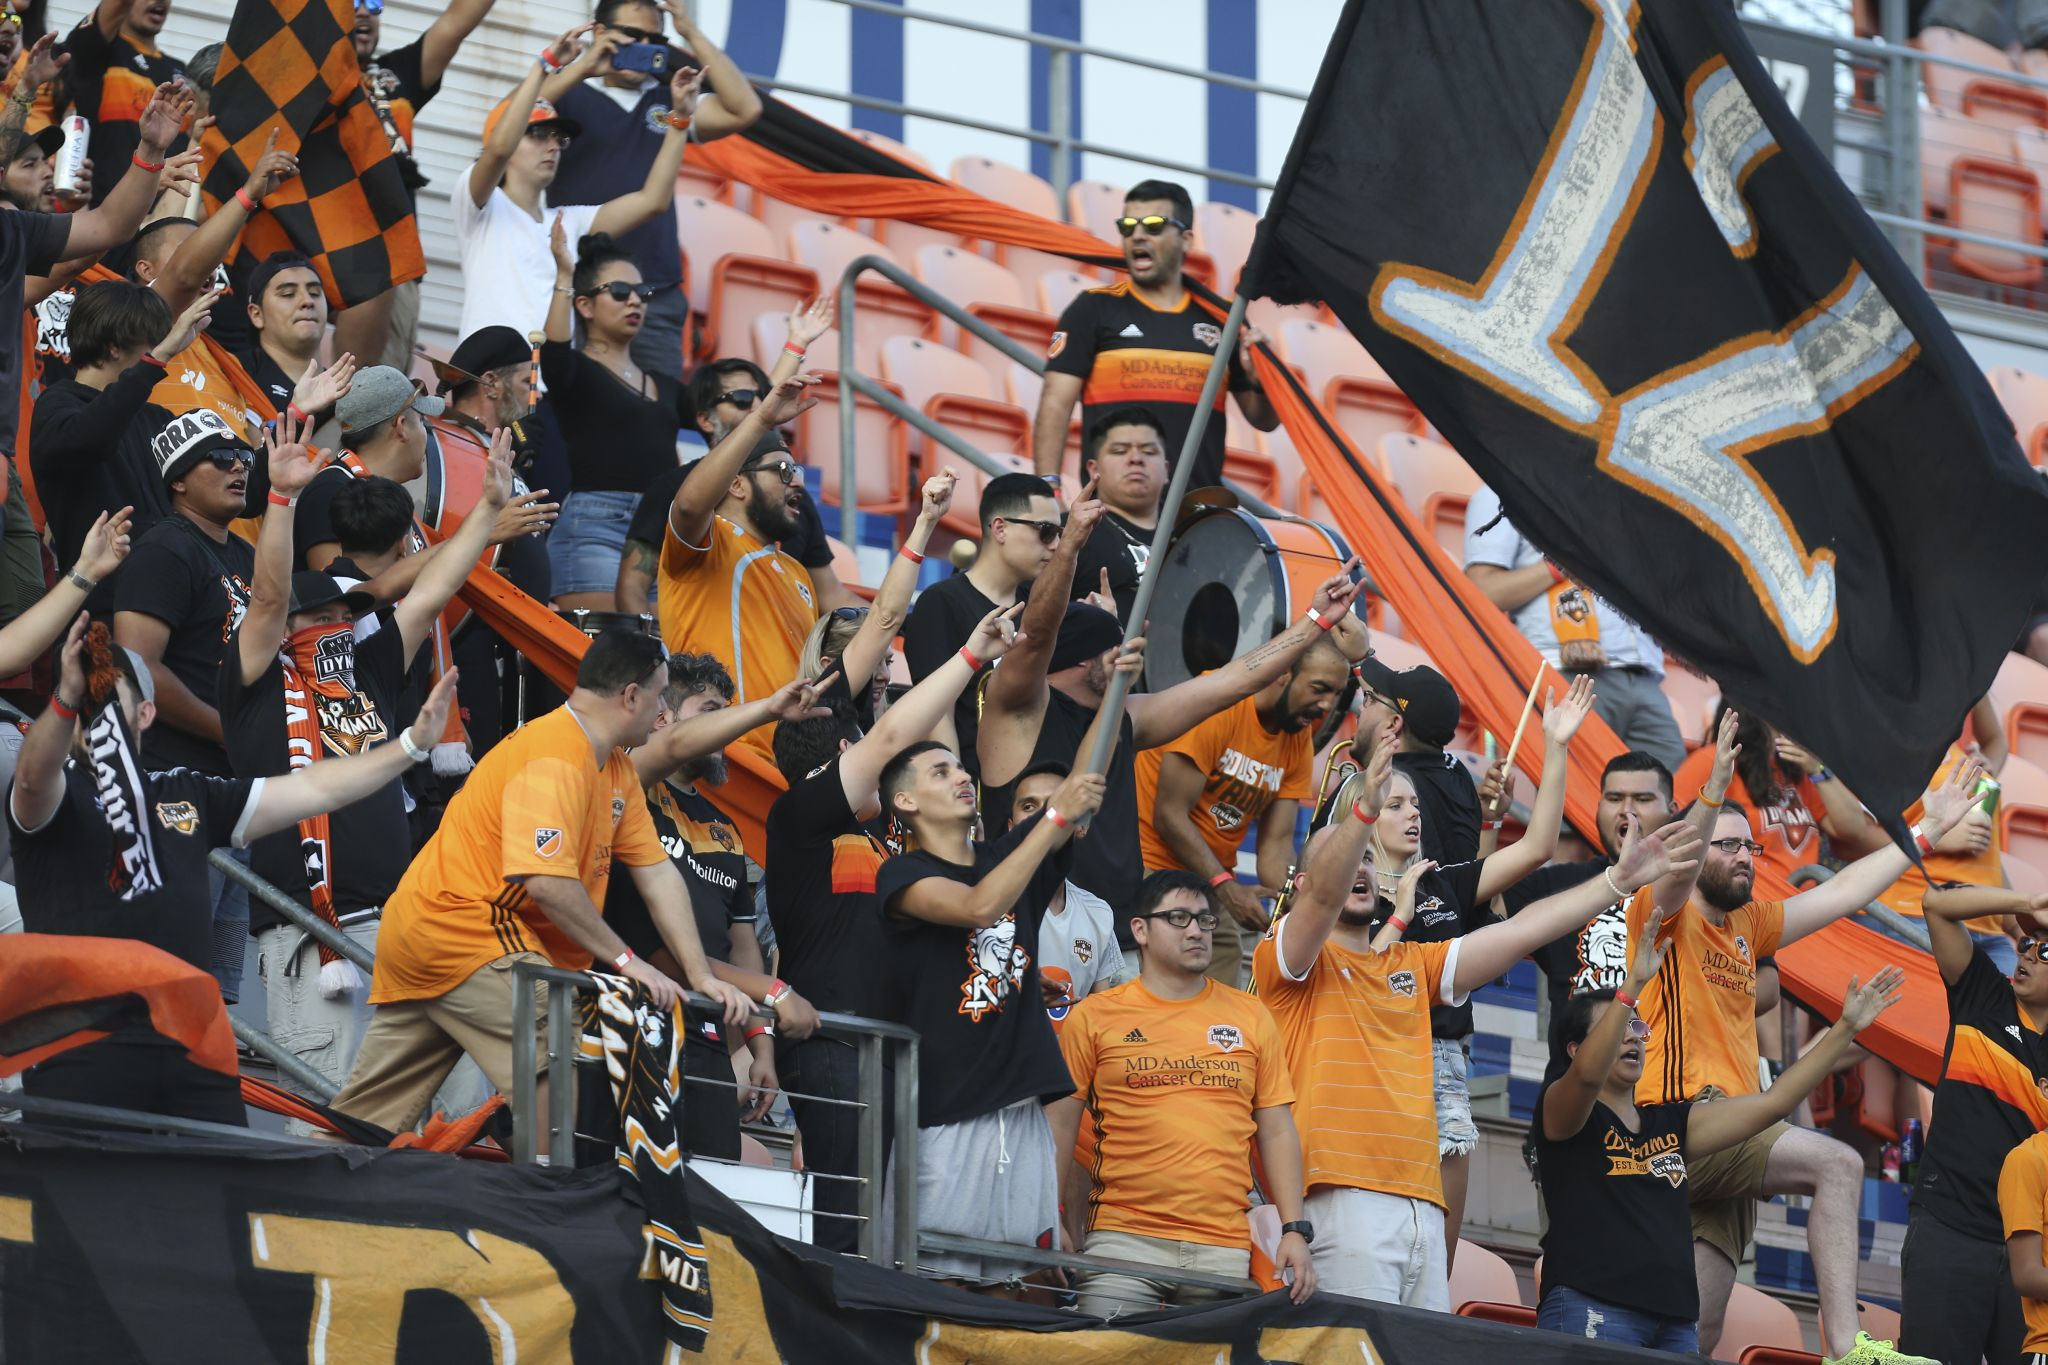 Smith: Frustrated fans sound off about declining Dynamo